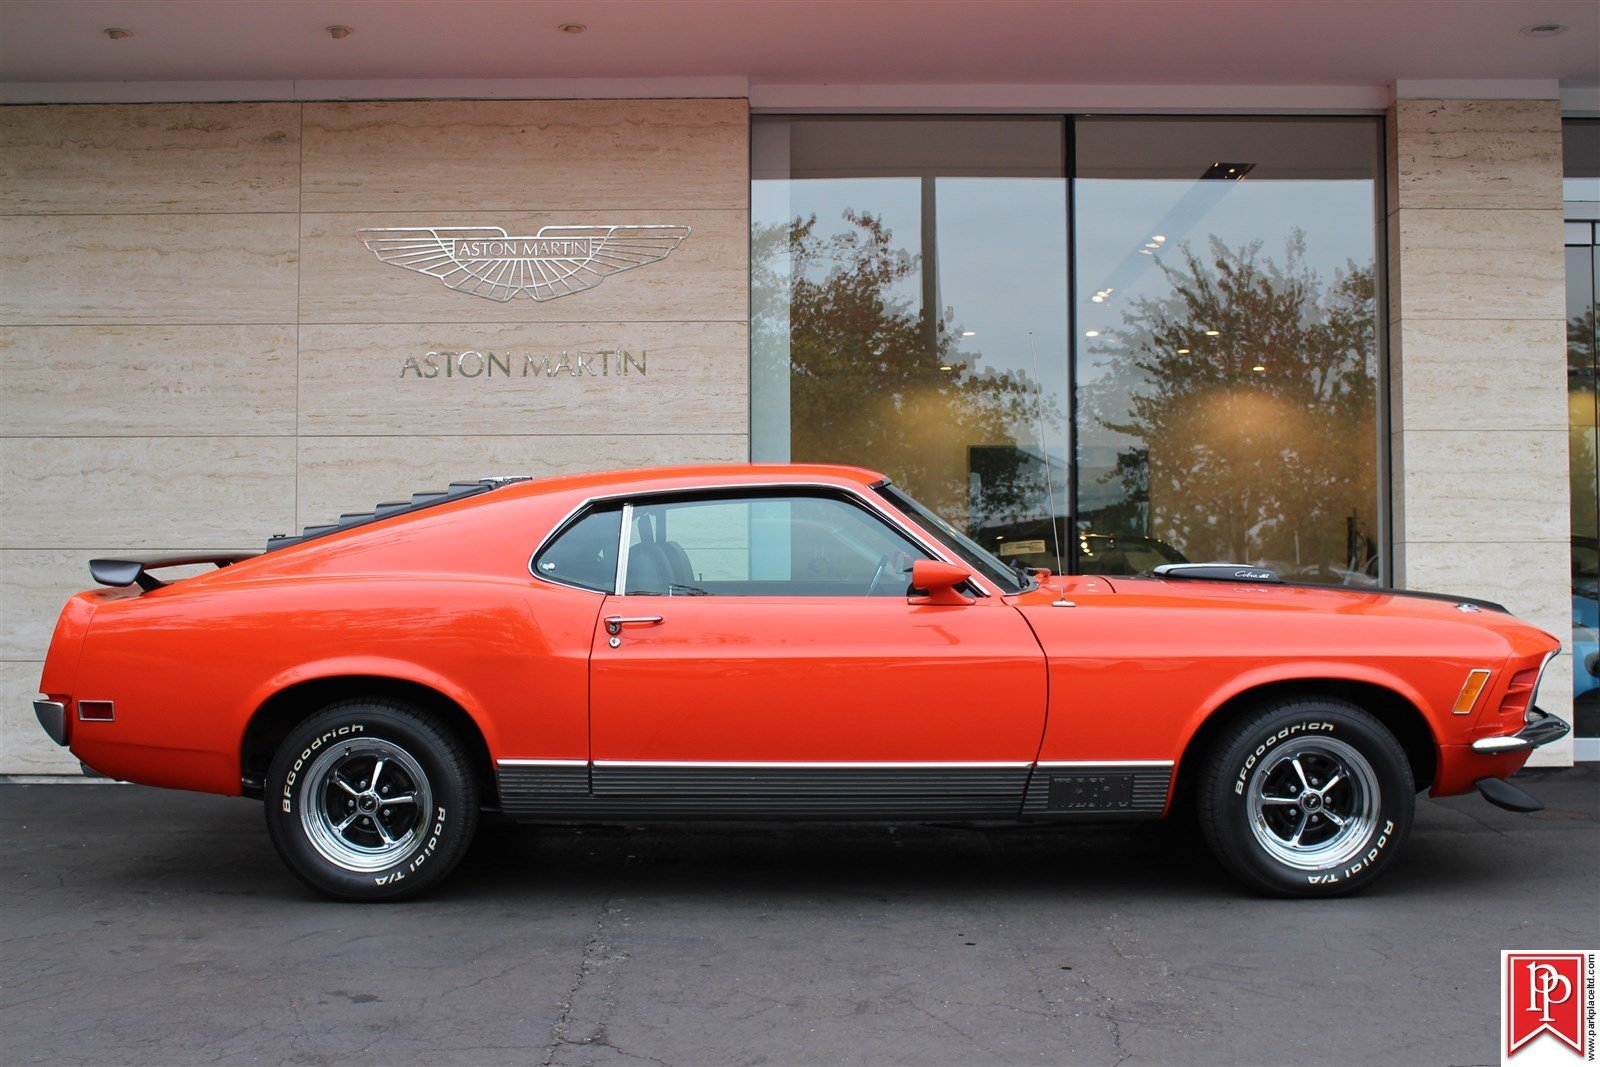 1970 Ford Mustang Mach 1 Super Cobra Jet - Exotic Car List